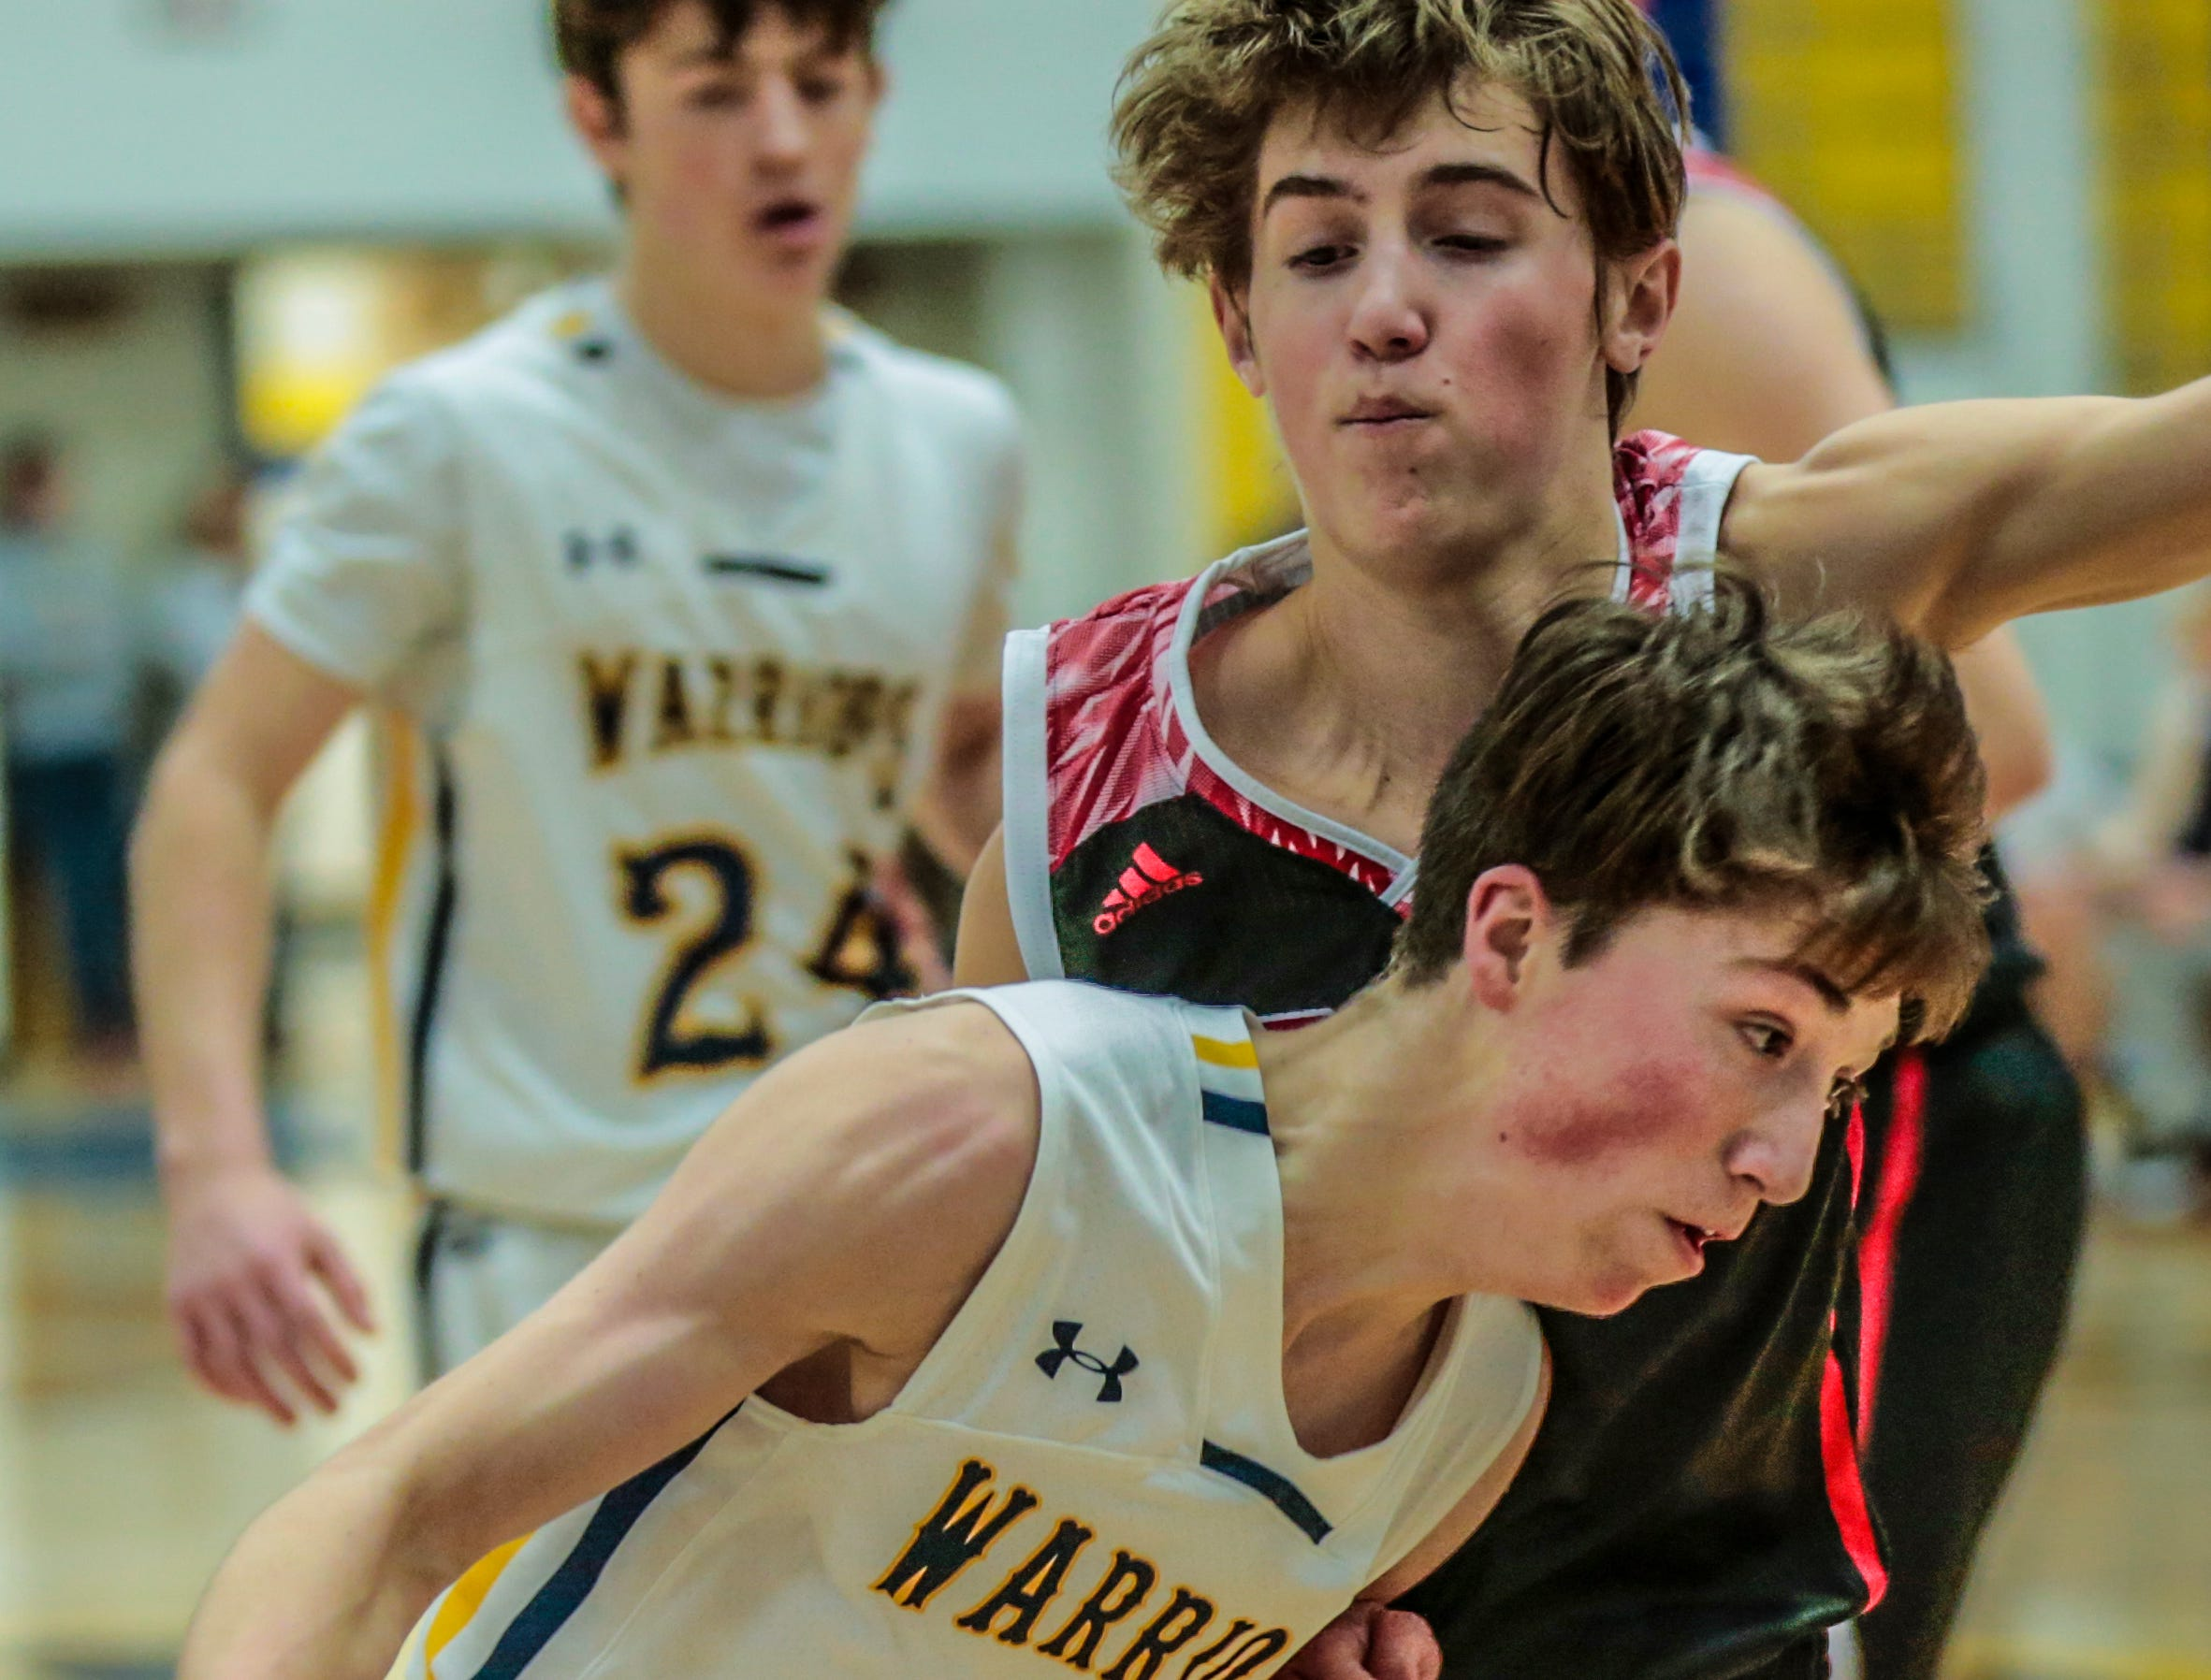 West's Tim Deloye(11), front, dribbles the ball away from SPASH's Nolan Blair(1) during Wisconsin Valley Conference boys basketball game Friday, Feb. 15, 2019, at Wausau West High School in Wausau, Wis. T'xer Zhon Kha/USA TODAY NETWORK-Wisconsin